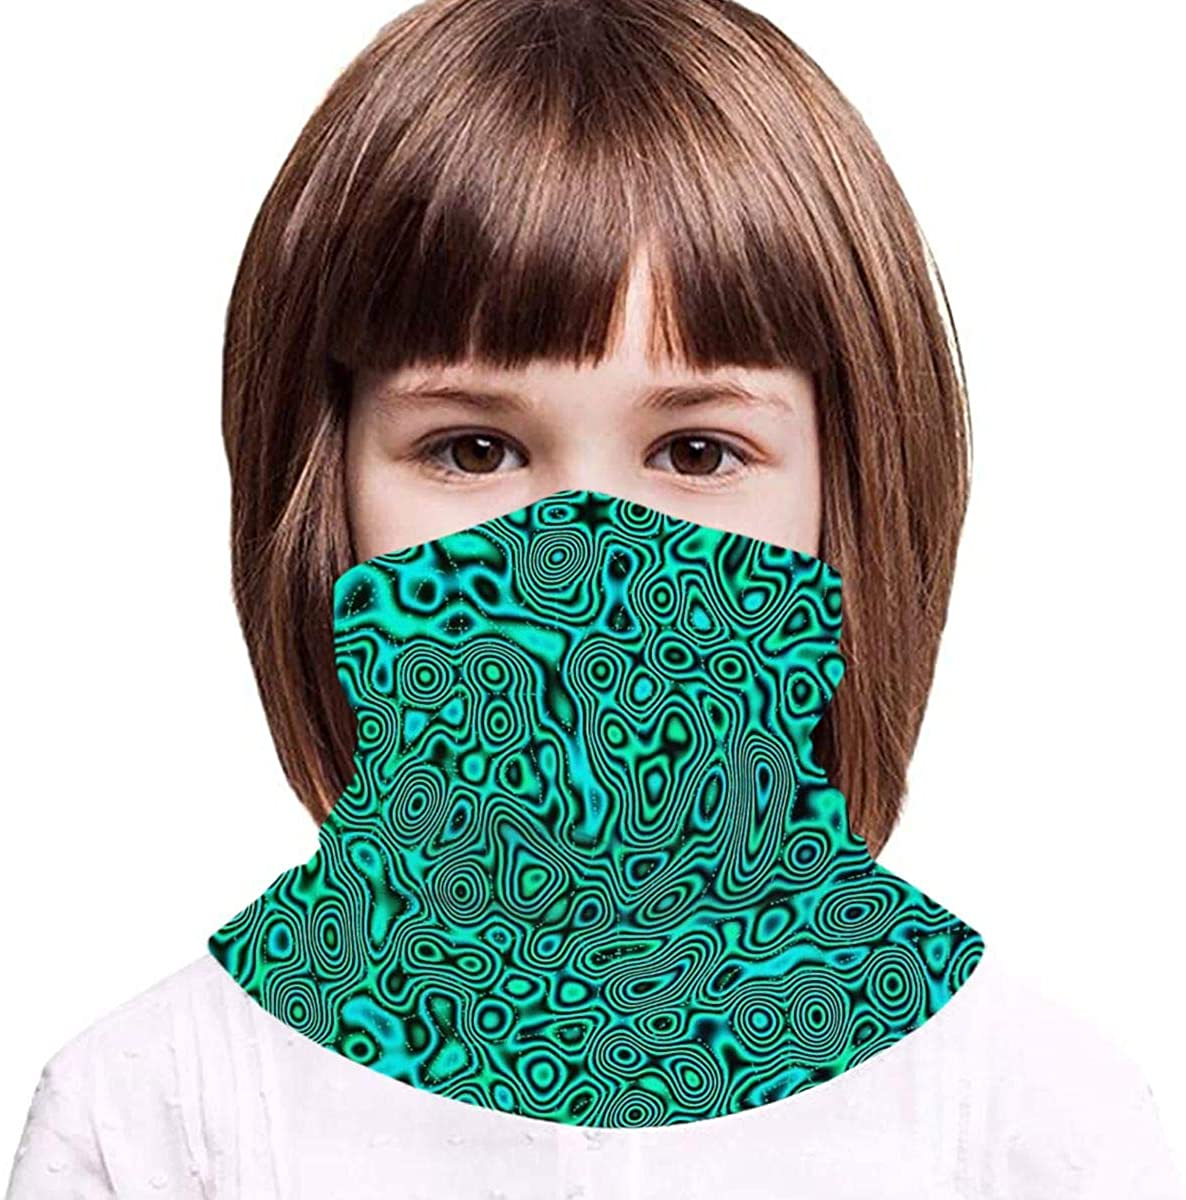 Green Trippy1 Boy Girl Seamless Face Cover Neck Gaiter Headband Teenagers Scarf Outdoors/Festivals/Sports - Gifts for Kids